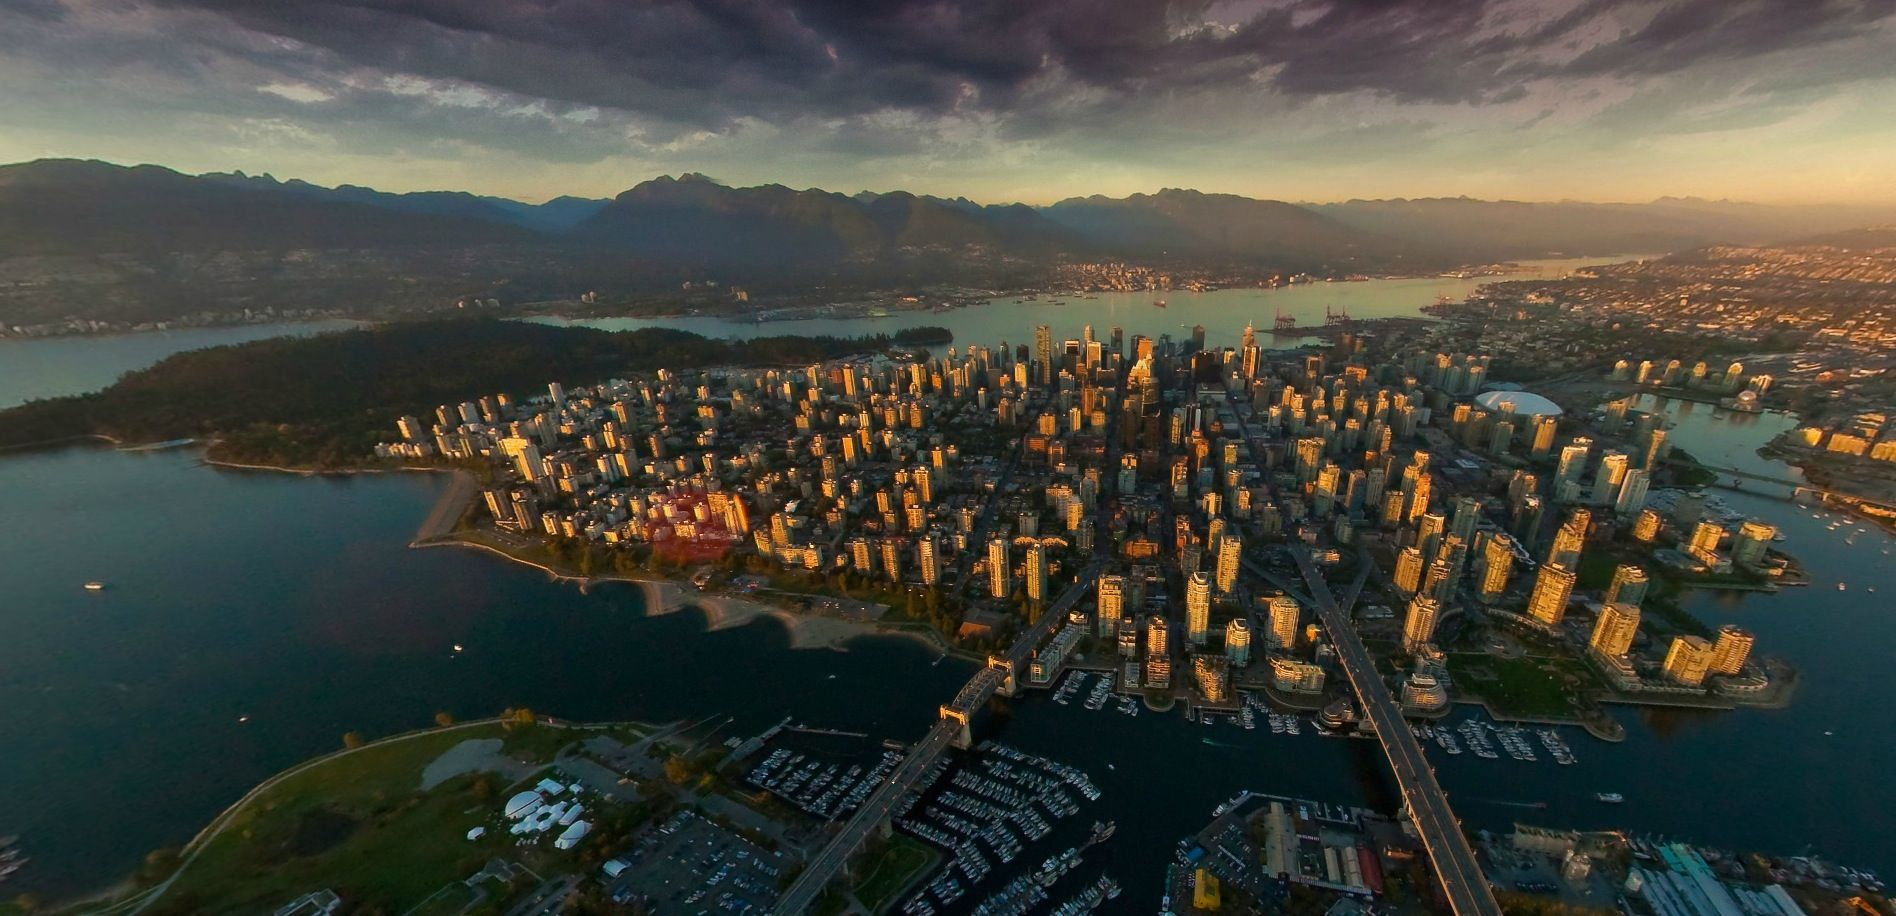 showcase vancouver at sunset aerial panorama vancouver. Black Bedroom Furniture Sets. Home Design Ideas